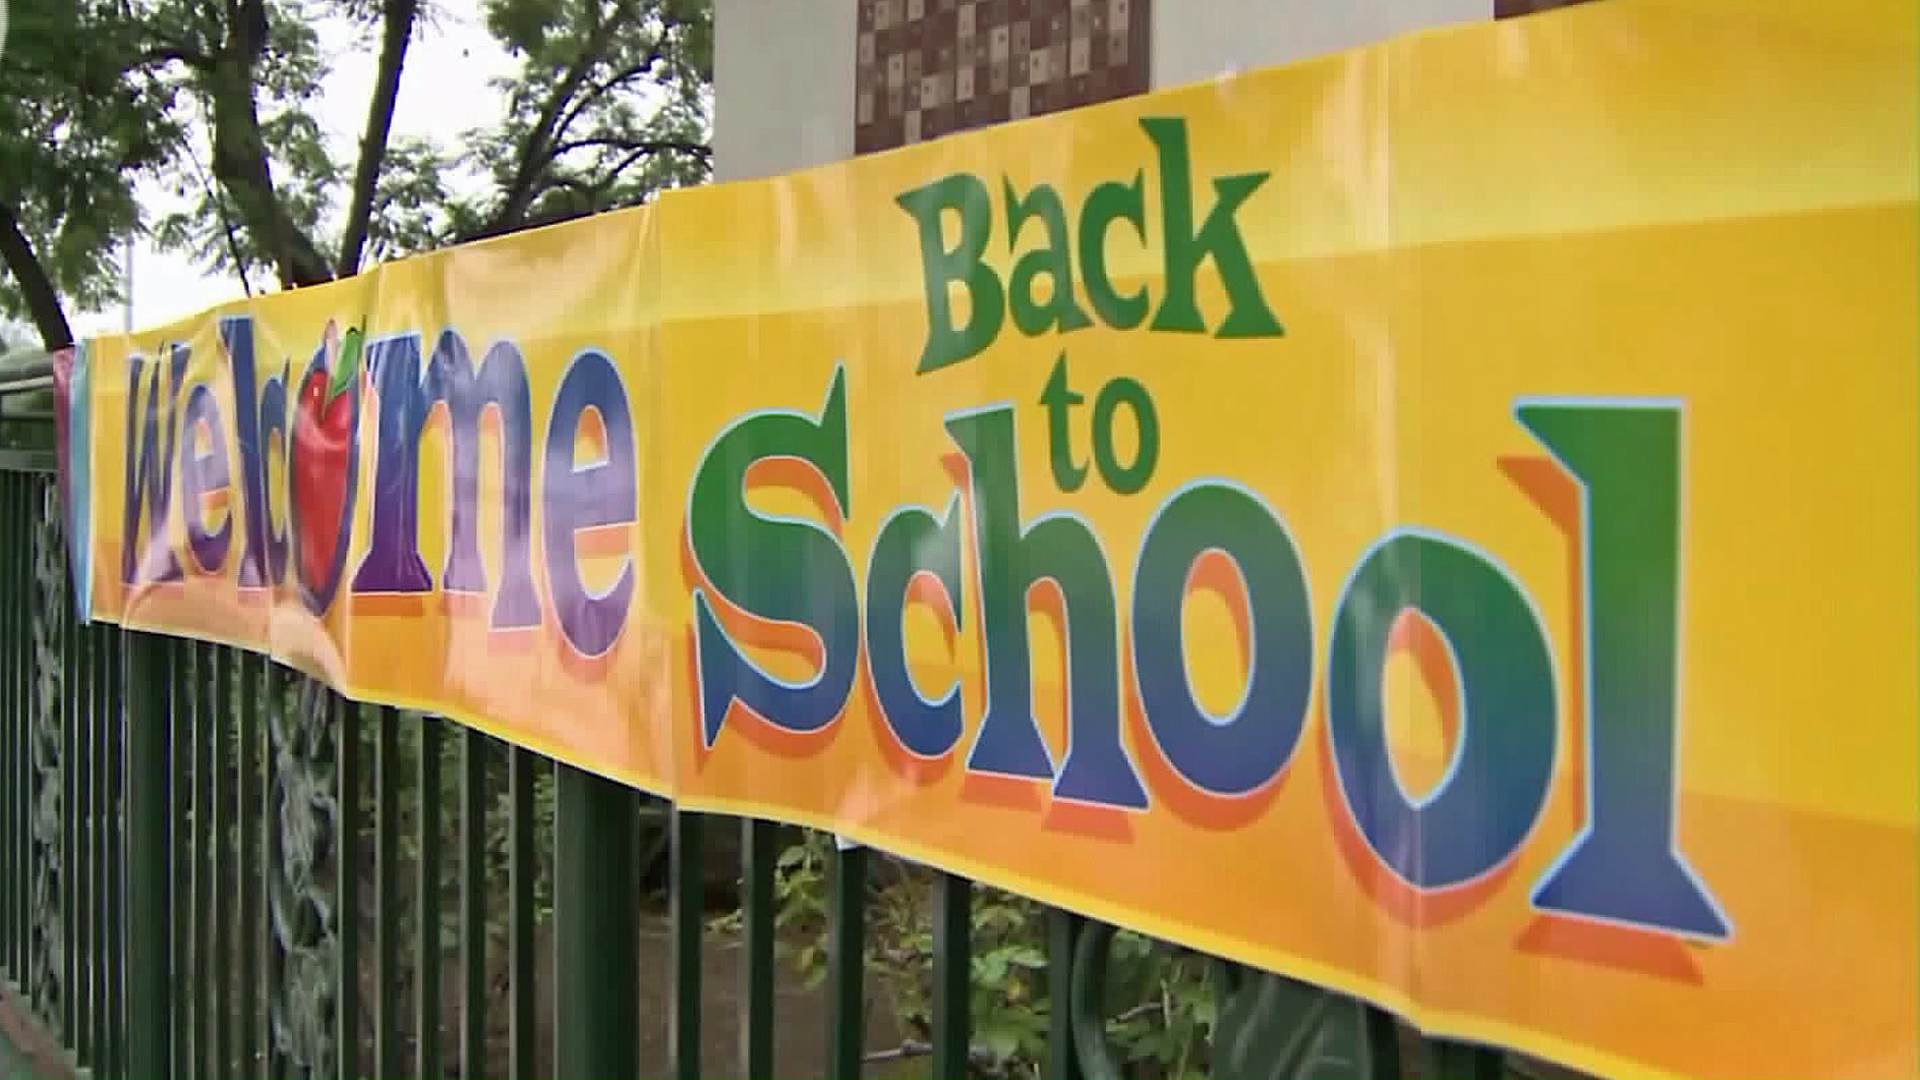 A banner at an LAUSD campus welcomes students back to school. (Credit: KTLA)